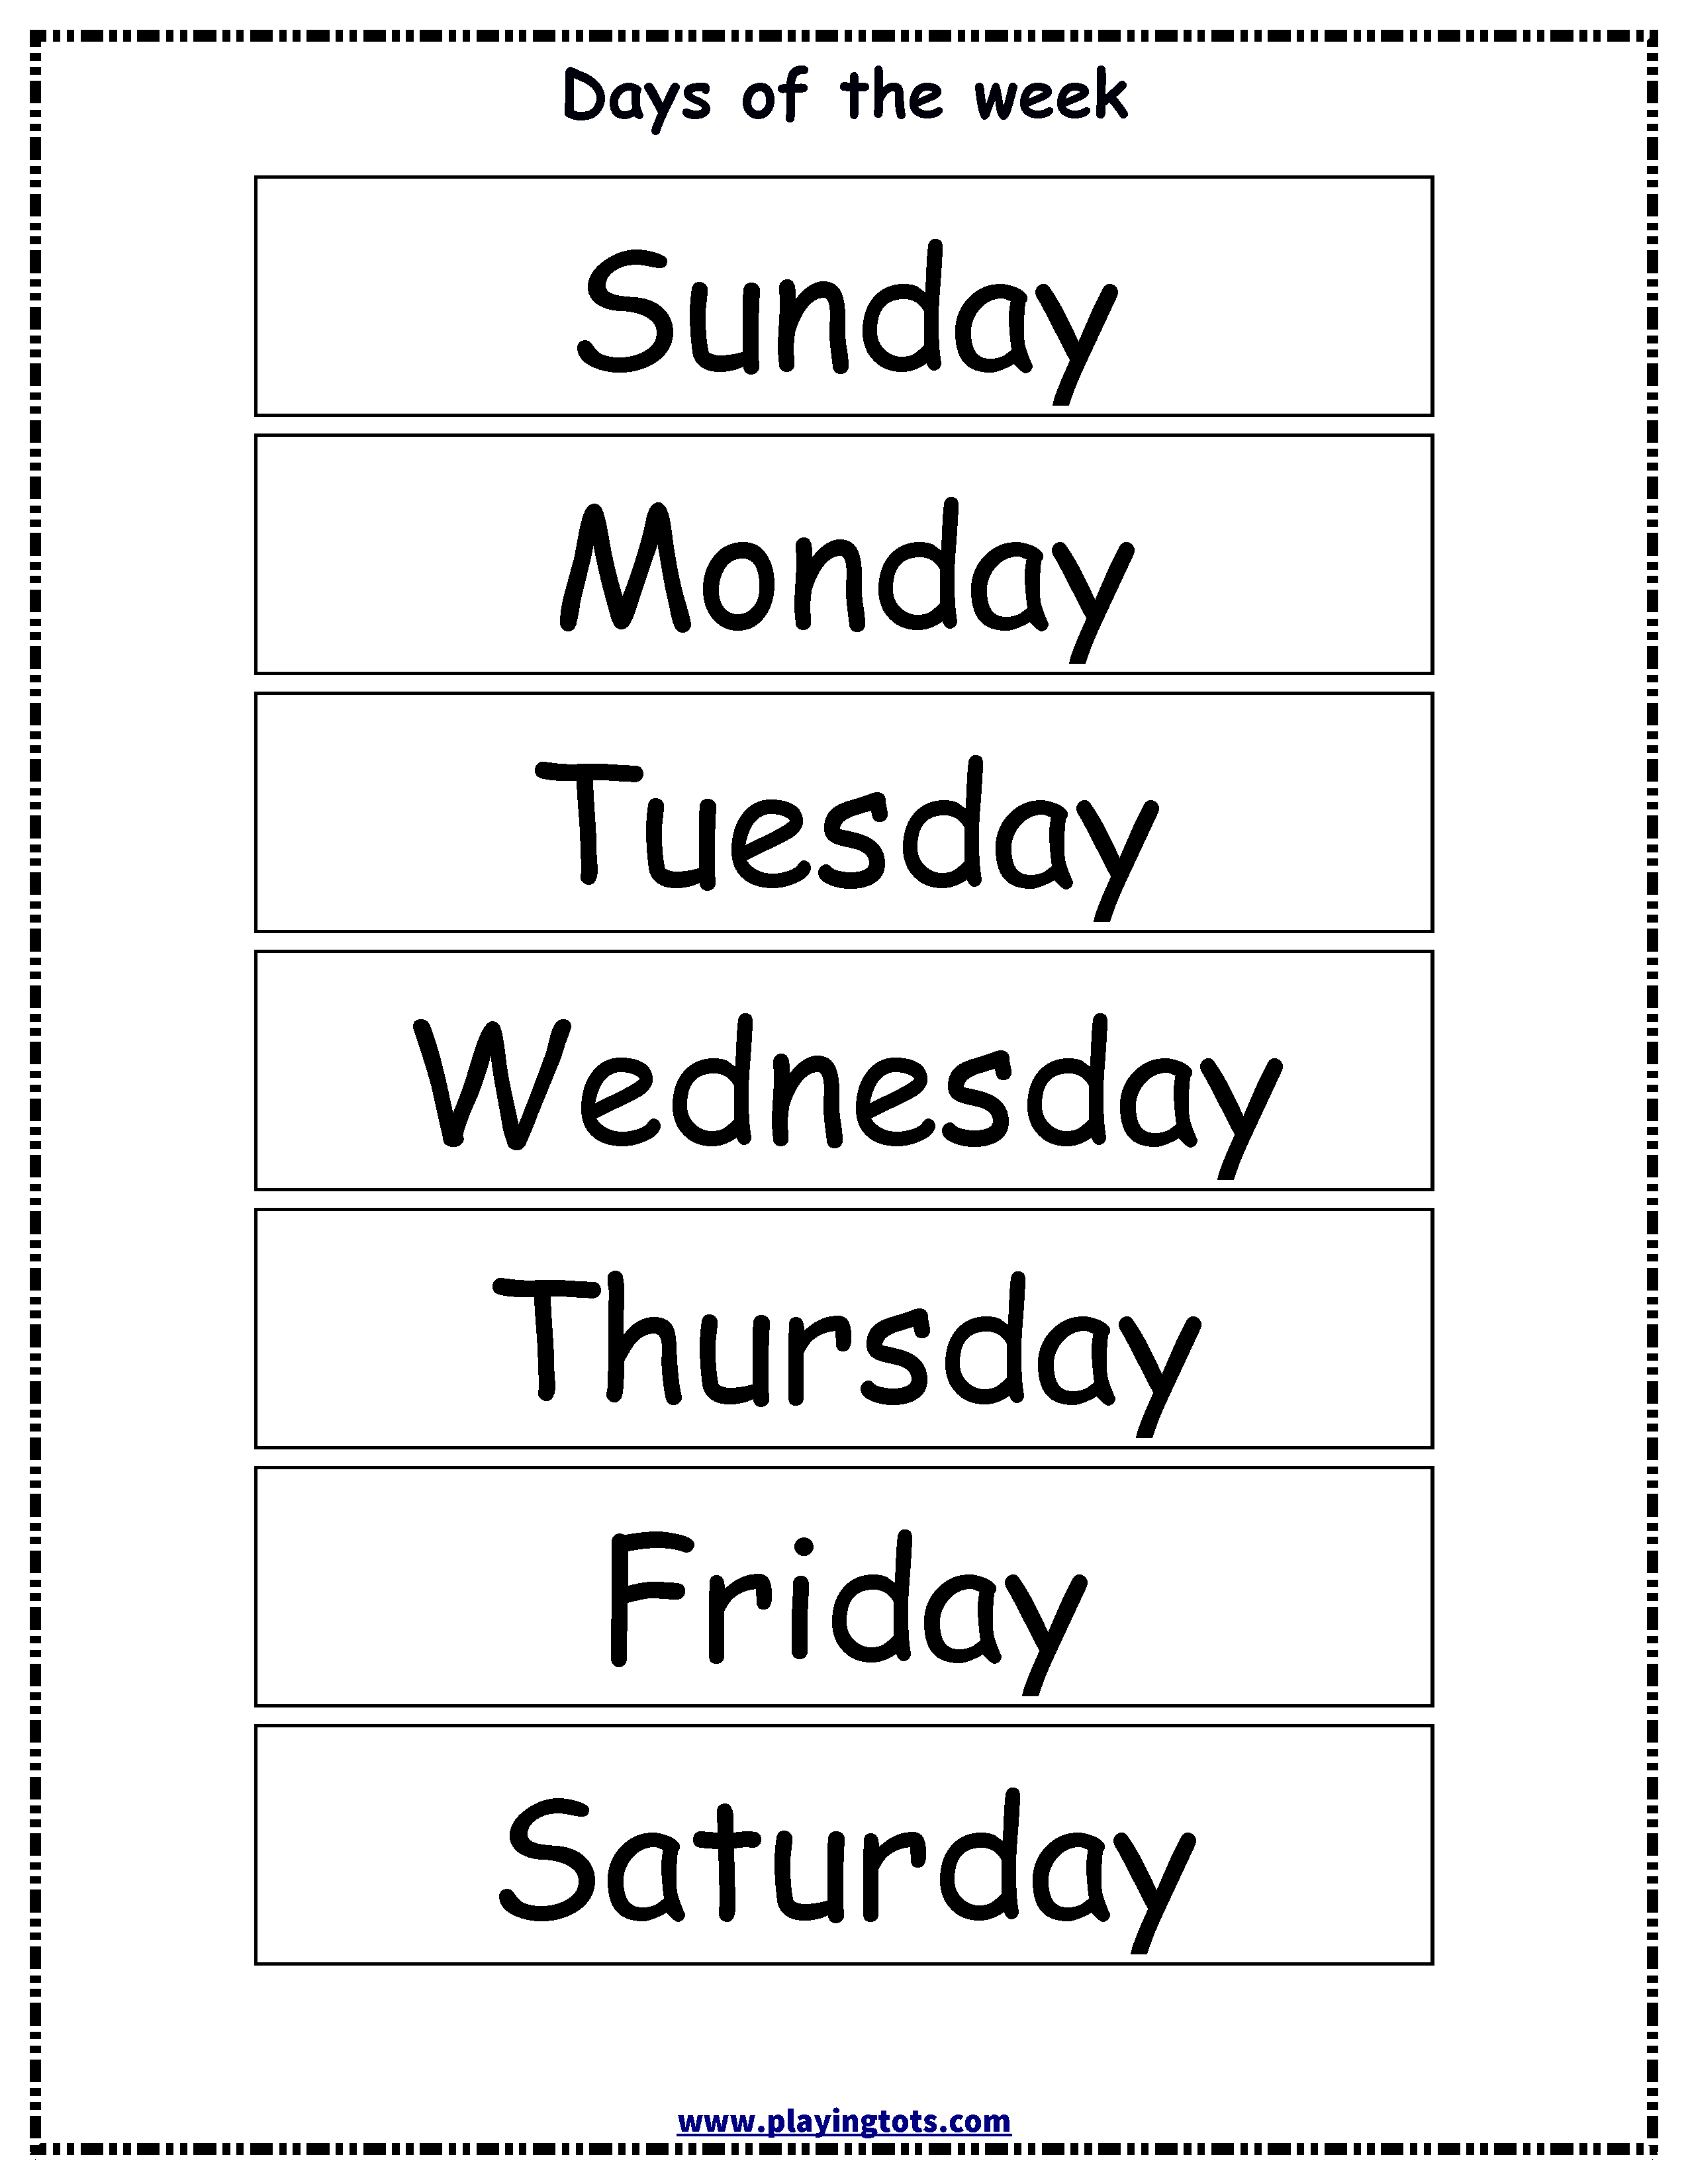 Simplicity image in printable days of the week chart